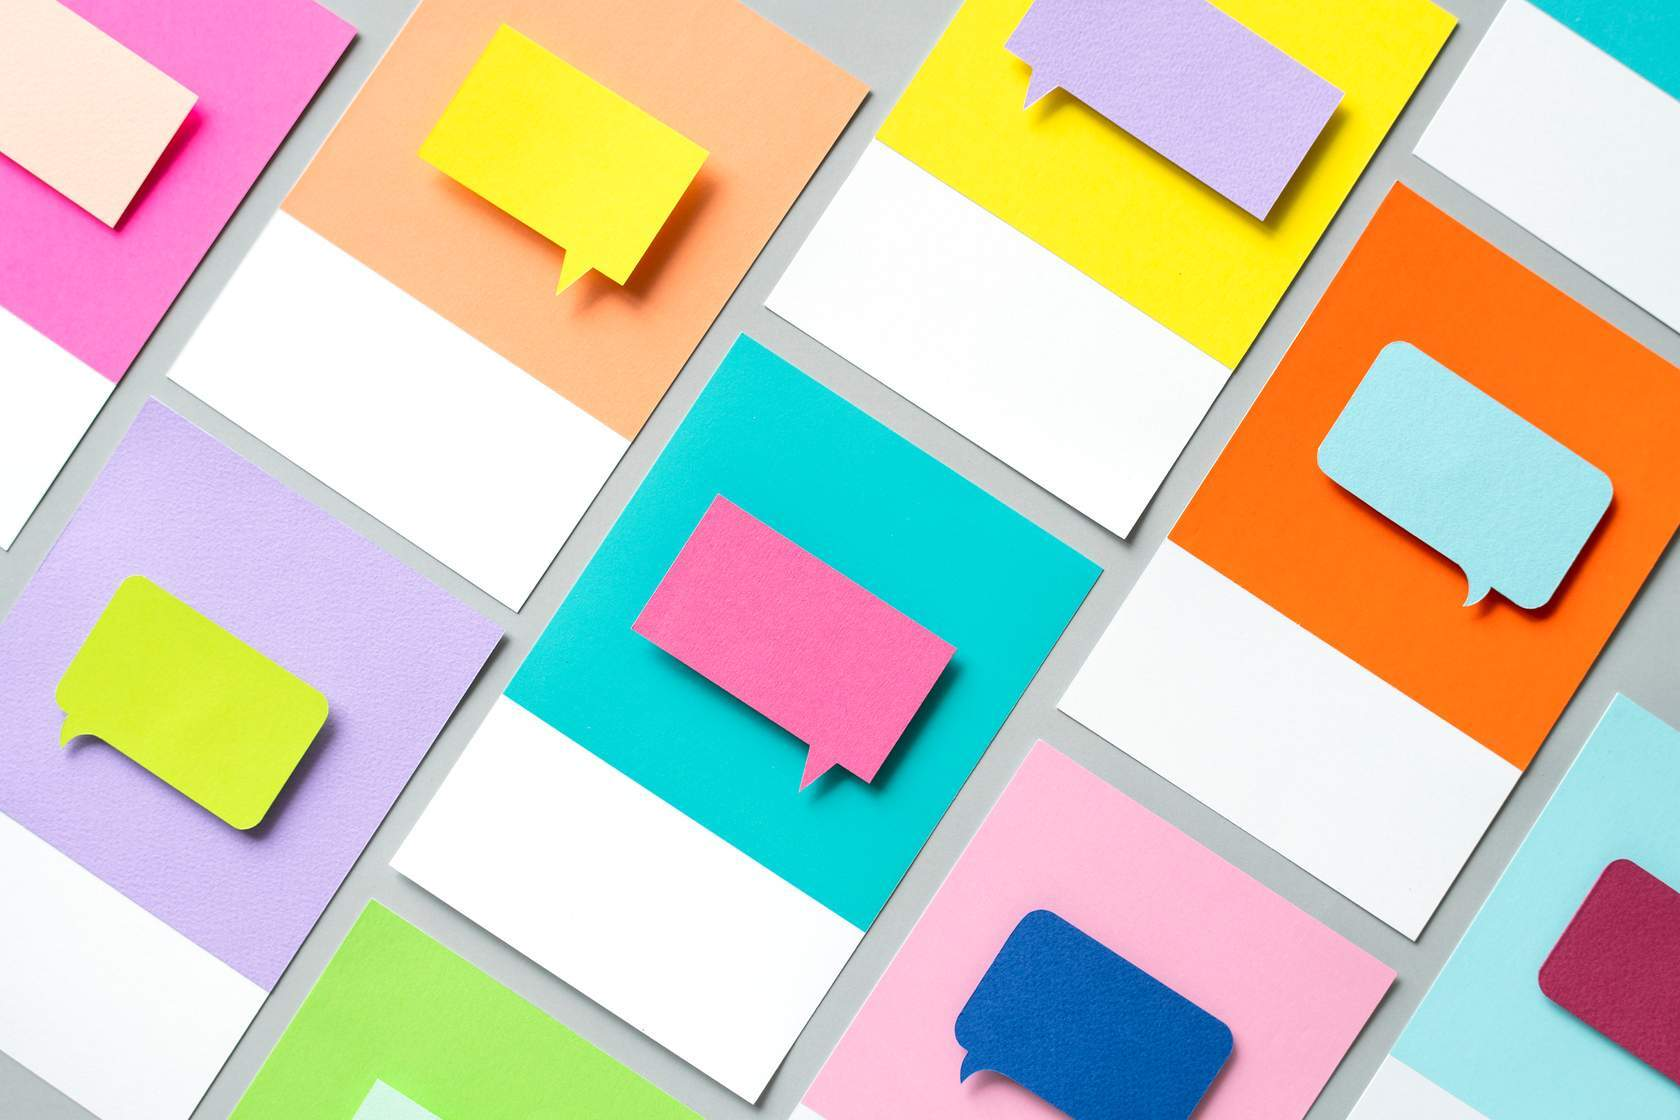 A series of colourful speech bubbles.